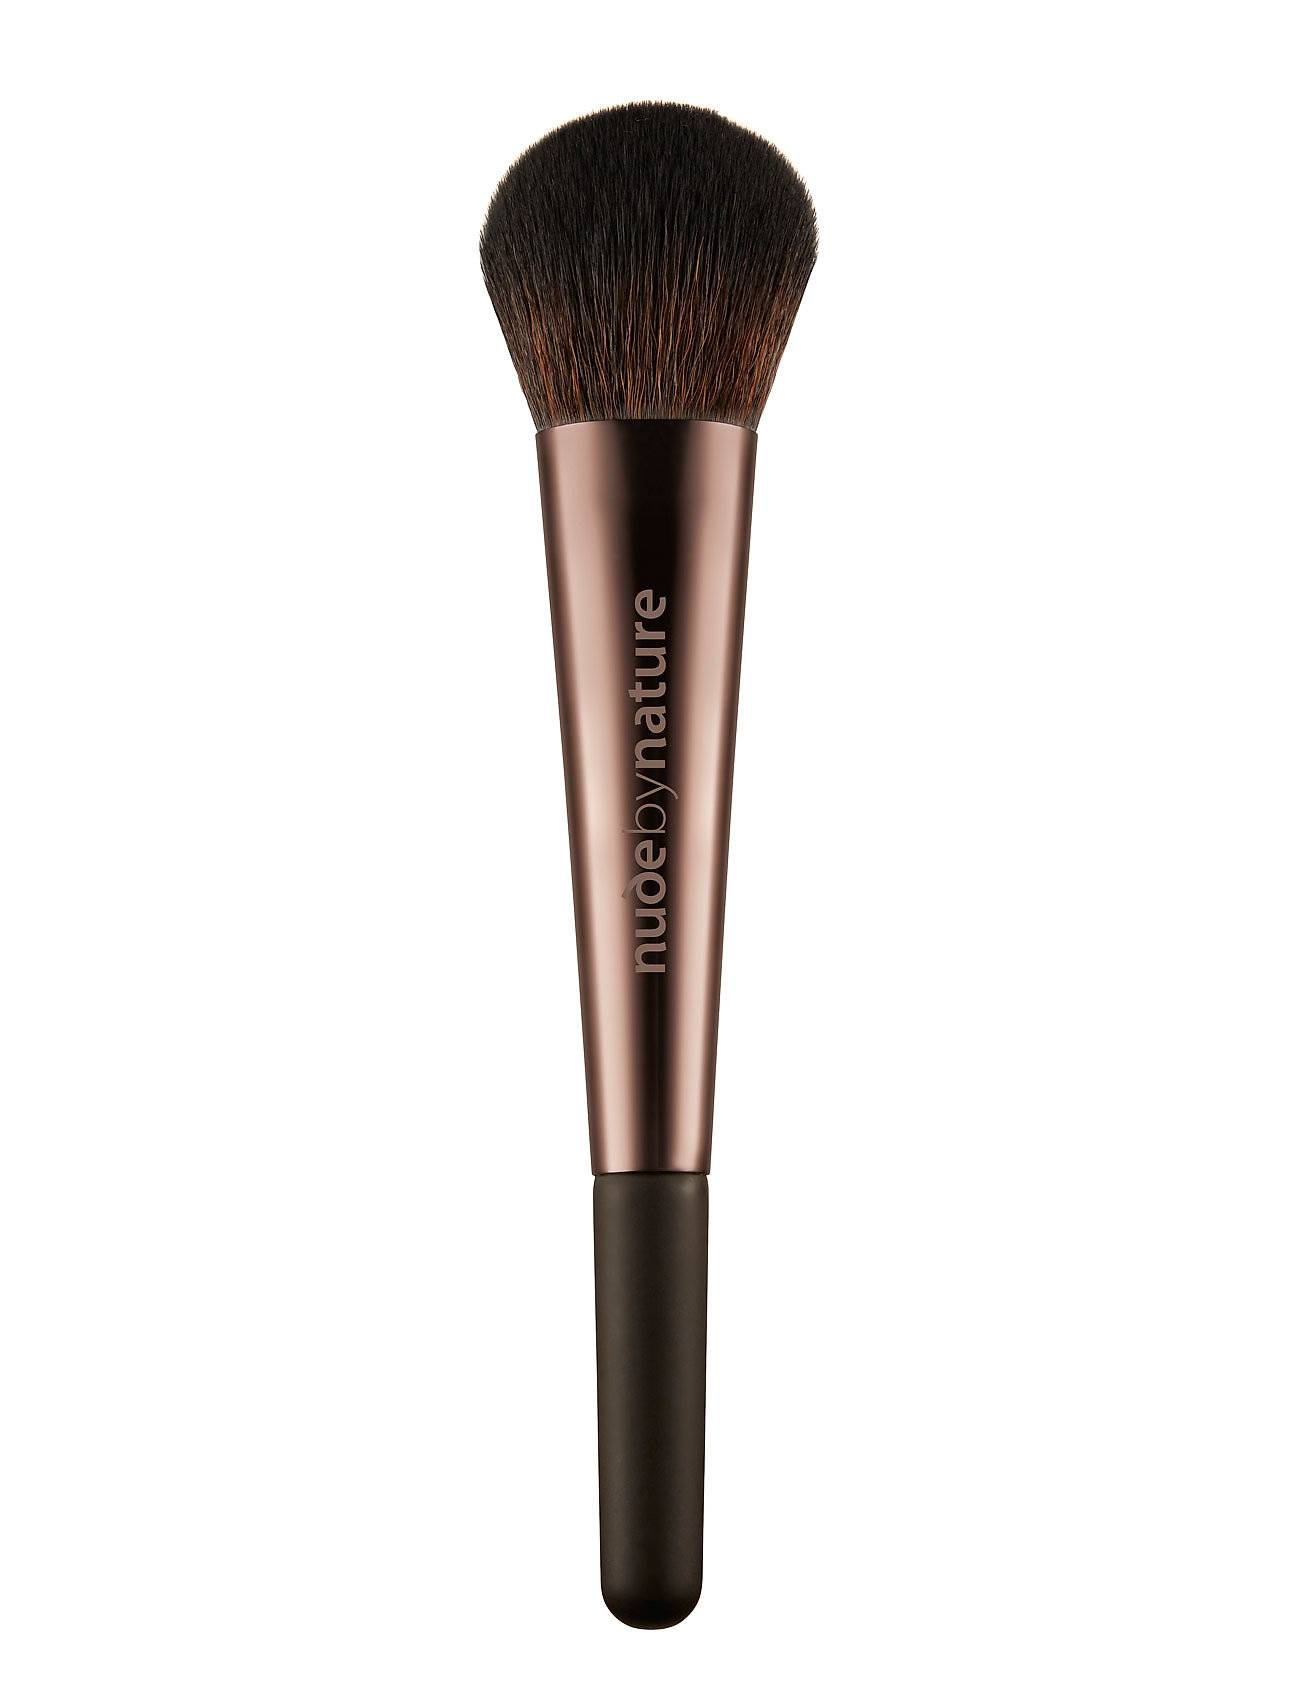 Nude by Nature Brushes 04 Contour Brush Beauty WOMEN Makeup Makeup Brushes Face Brushes Nude Nude By Nature